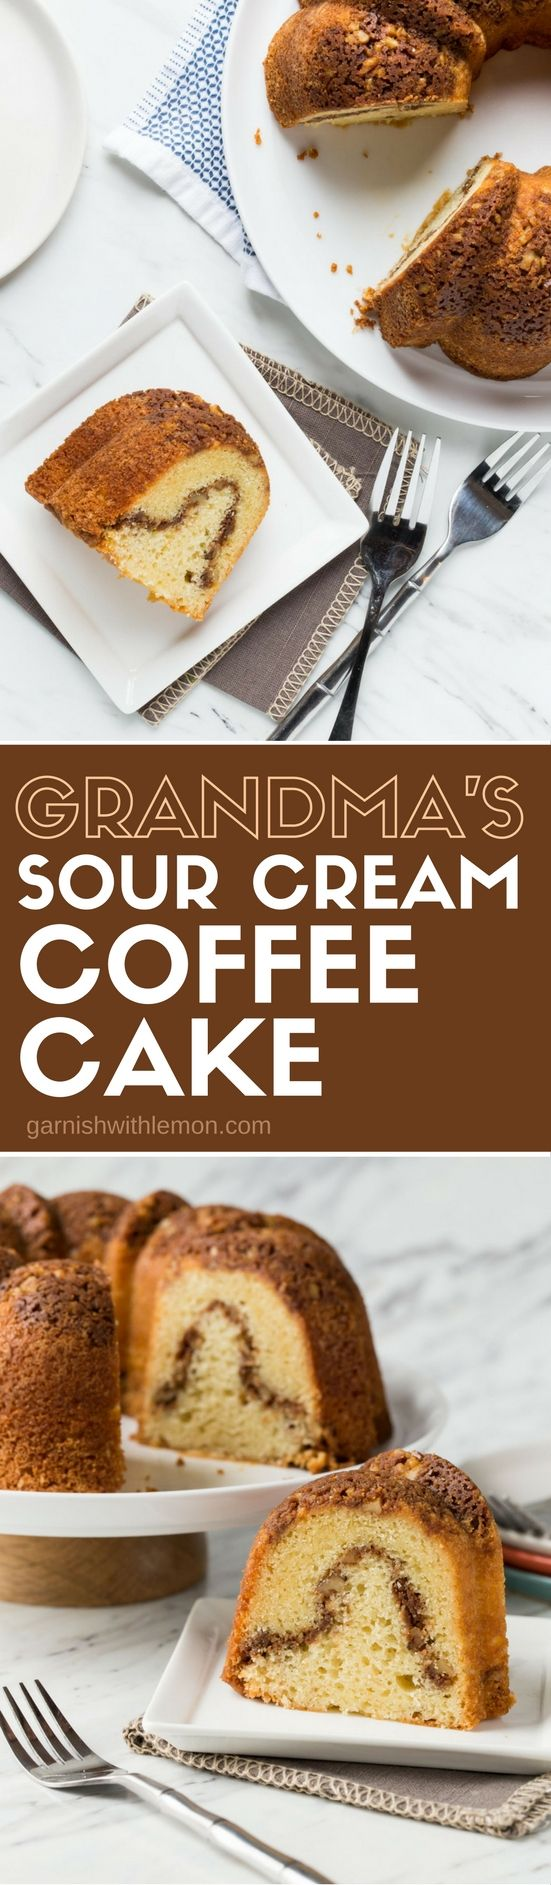 This Sour Cream Coffee Cake Recipe Is A Family Favorite From My Grandma And It S A Great Make Ahead Sour Cream Coffee Cake Coffee Cake Recipes Coffee Recipes